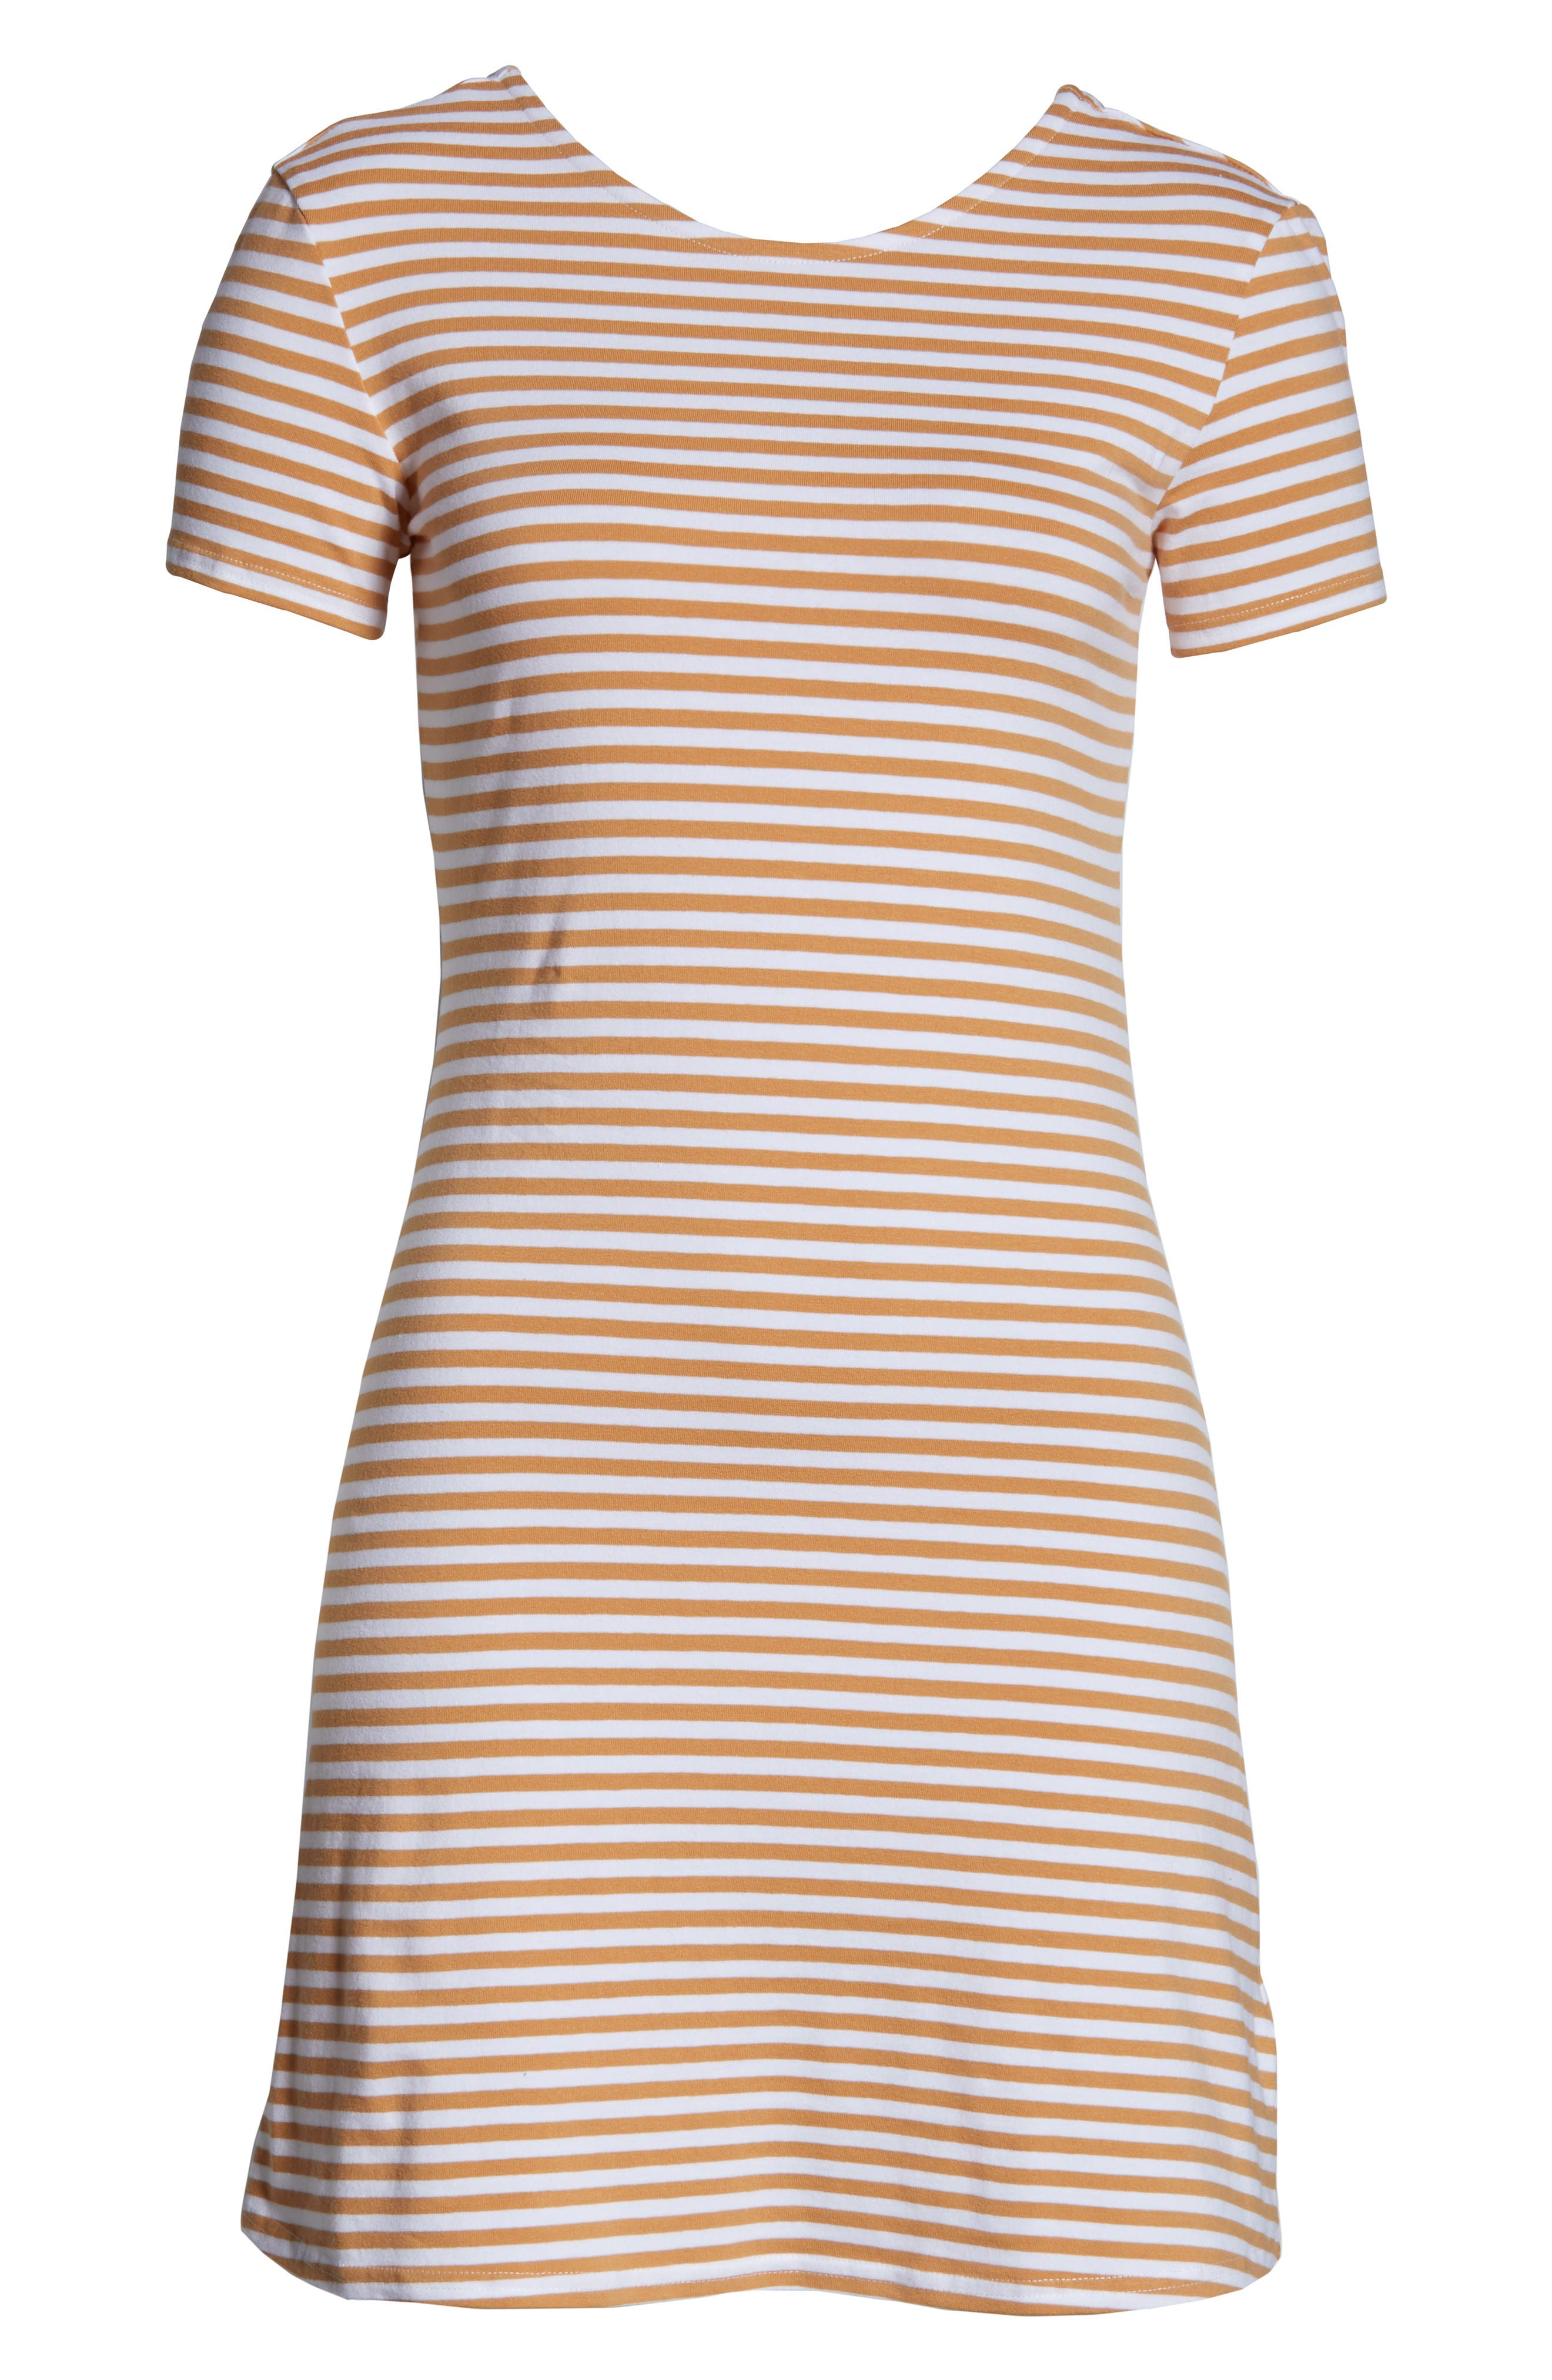 VOLCOM, Looking Out Stripe T-Shirt Dress, Alternate thumbnail 5, color, 250